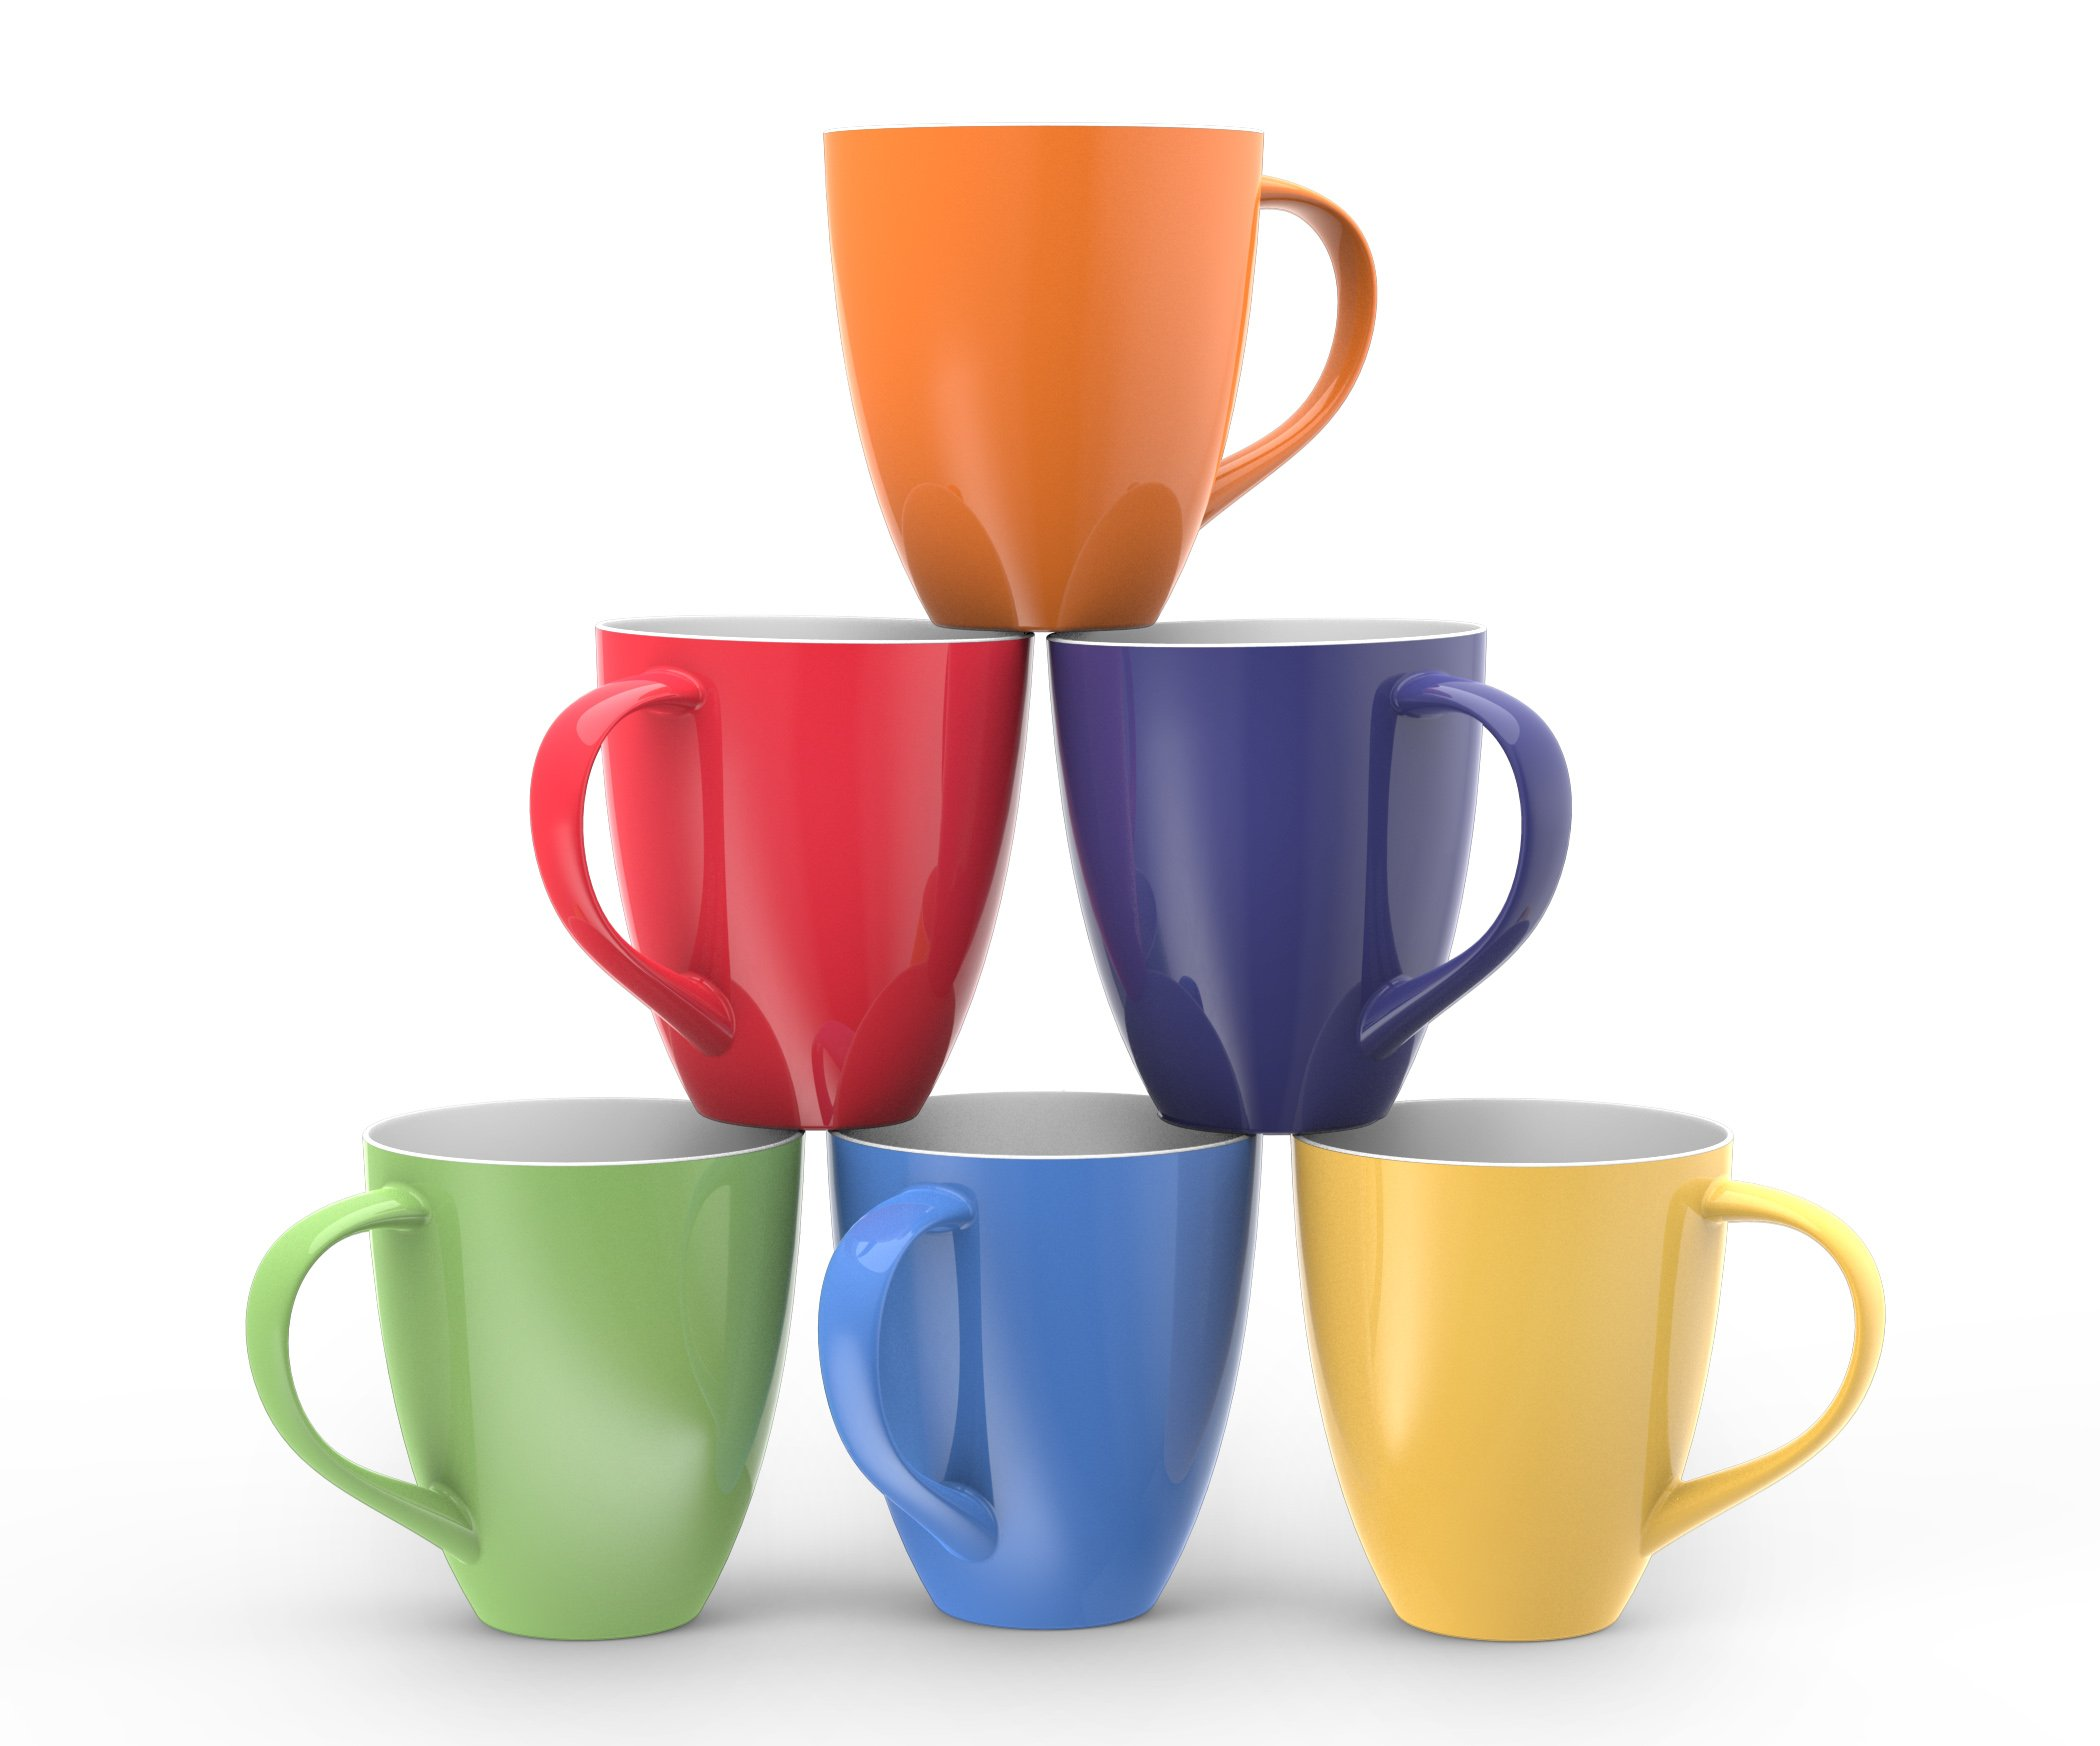 Francois et Mimi Set of 6 Large-sized 16 Ounce Ceramic Coffee Mugs (Solid Colorful)